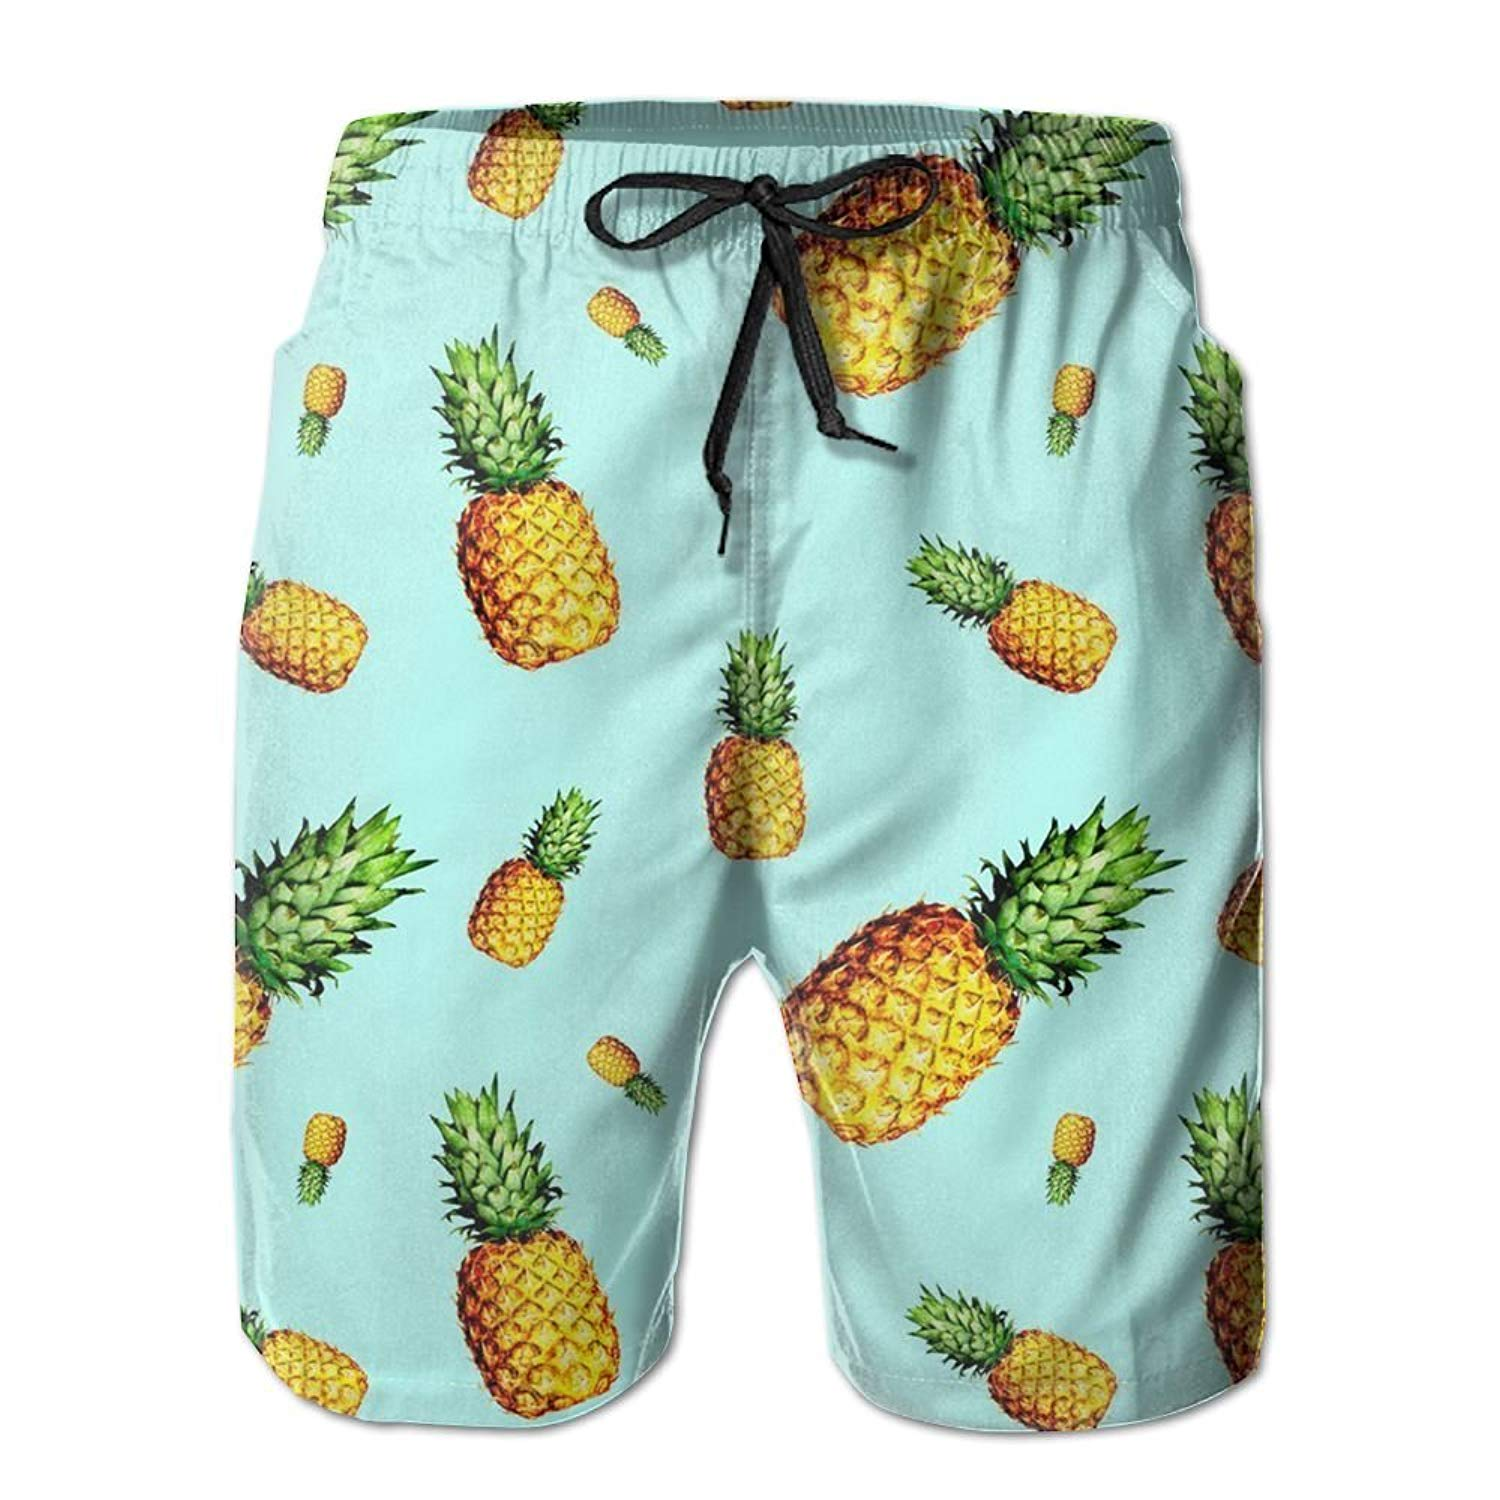 Ouxioaz Boys Swim Trunk Ananas Pineapple Beach Board Shorts